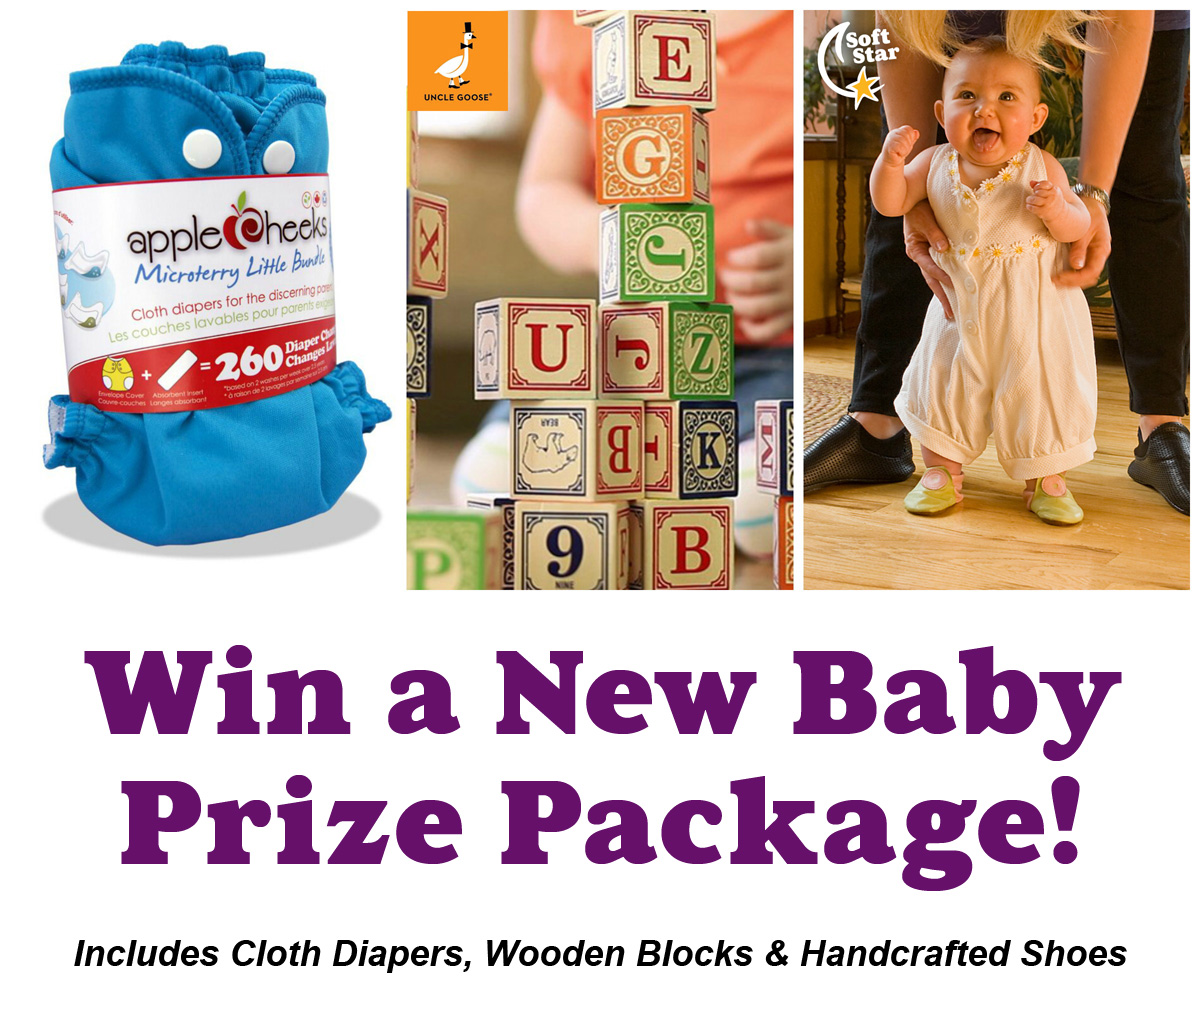 GIVEAWAY: Diapers, Blocks and Shoes... Oh My! Enter to Win Our New Baby Prize Package